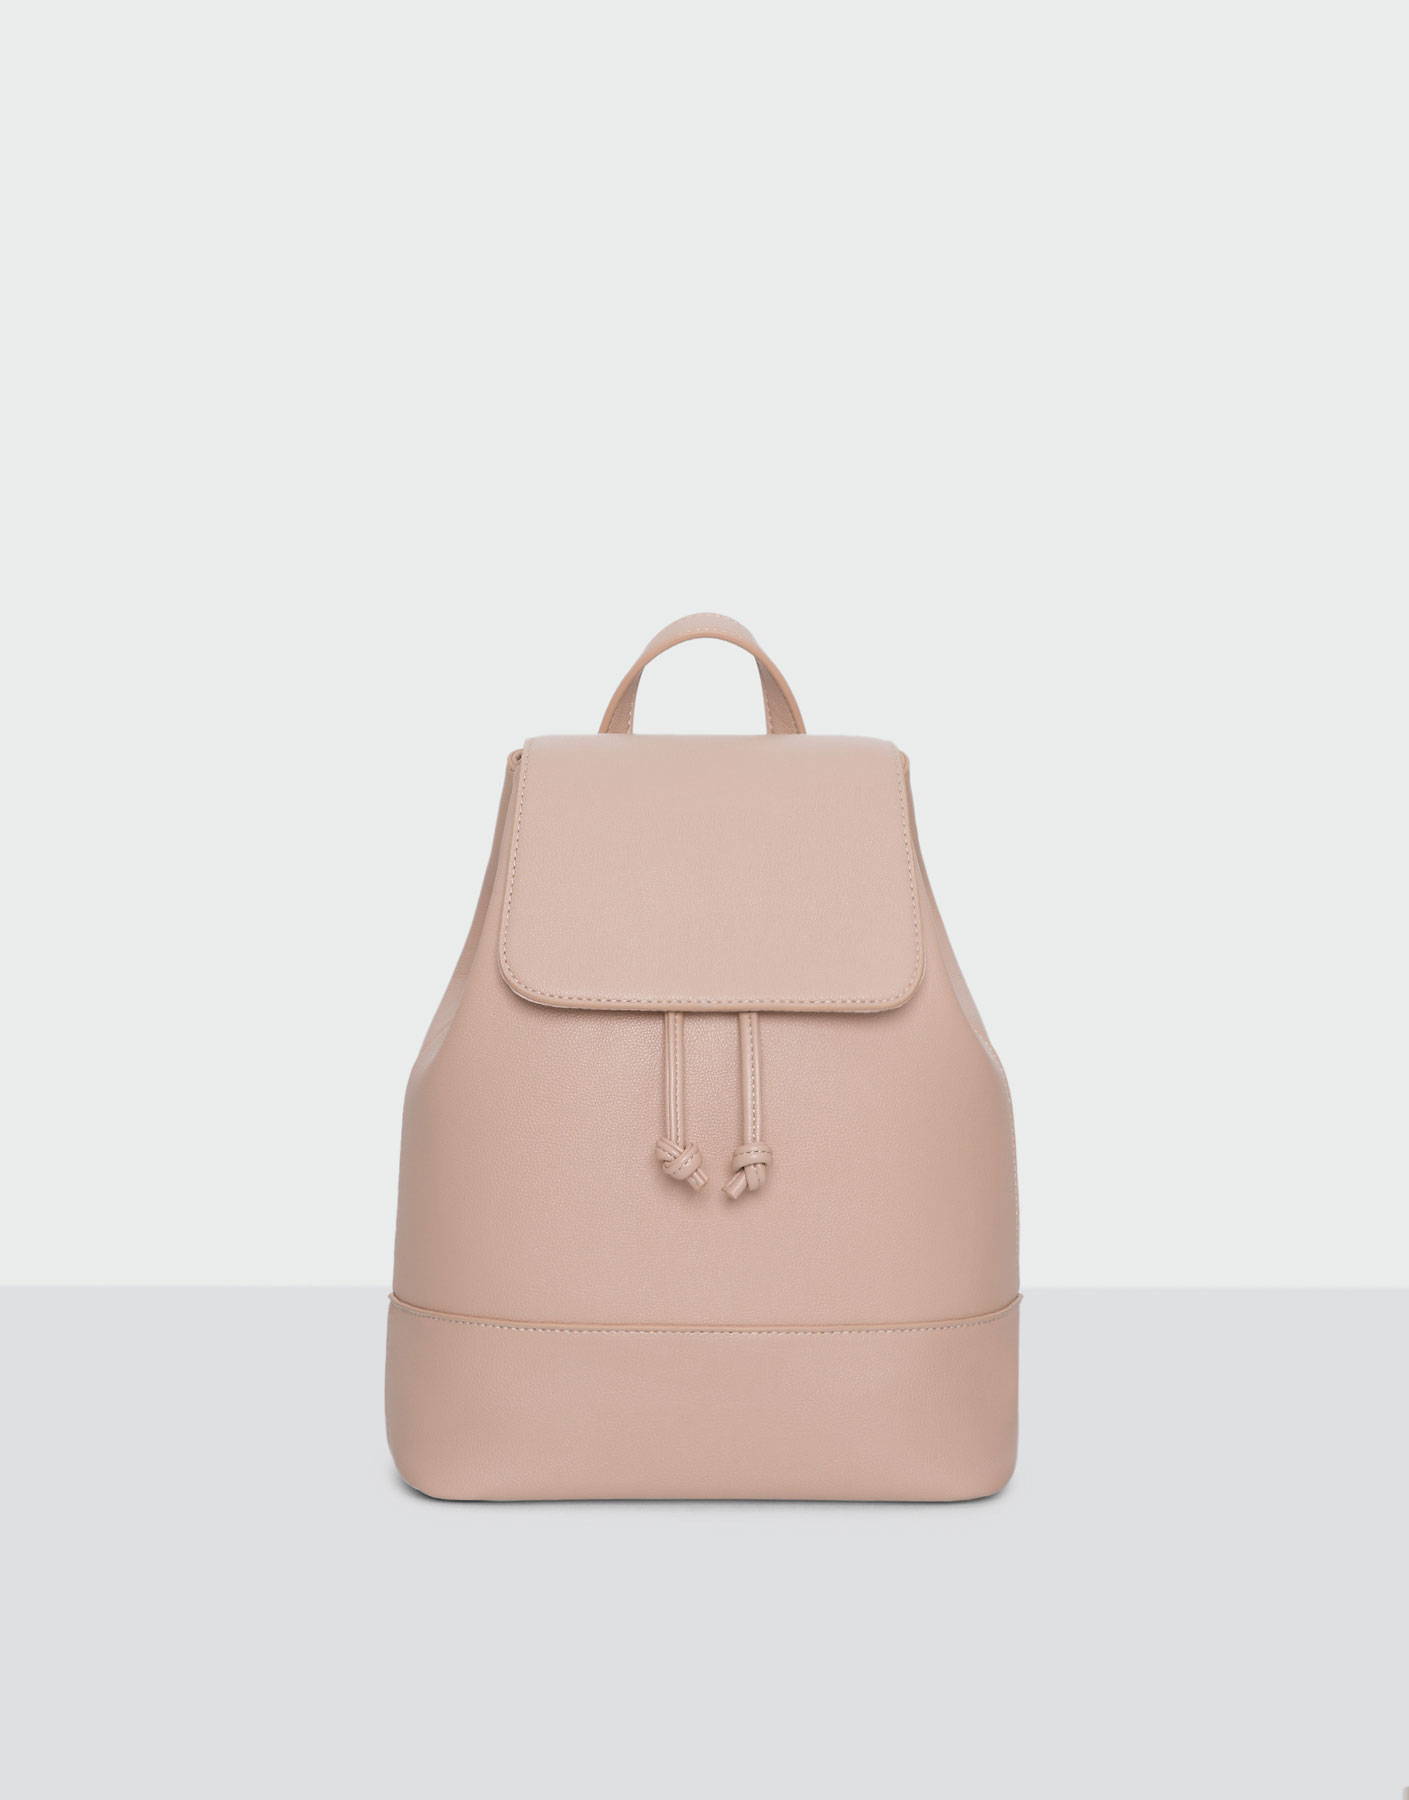 Basic pink backpack